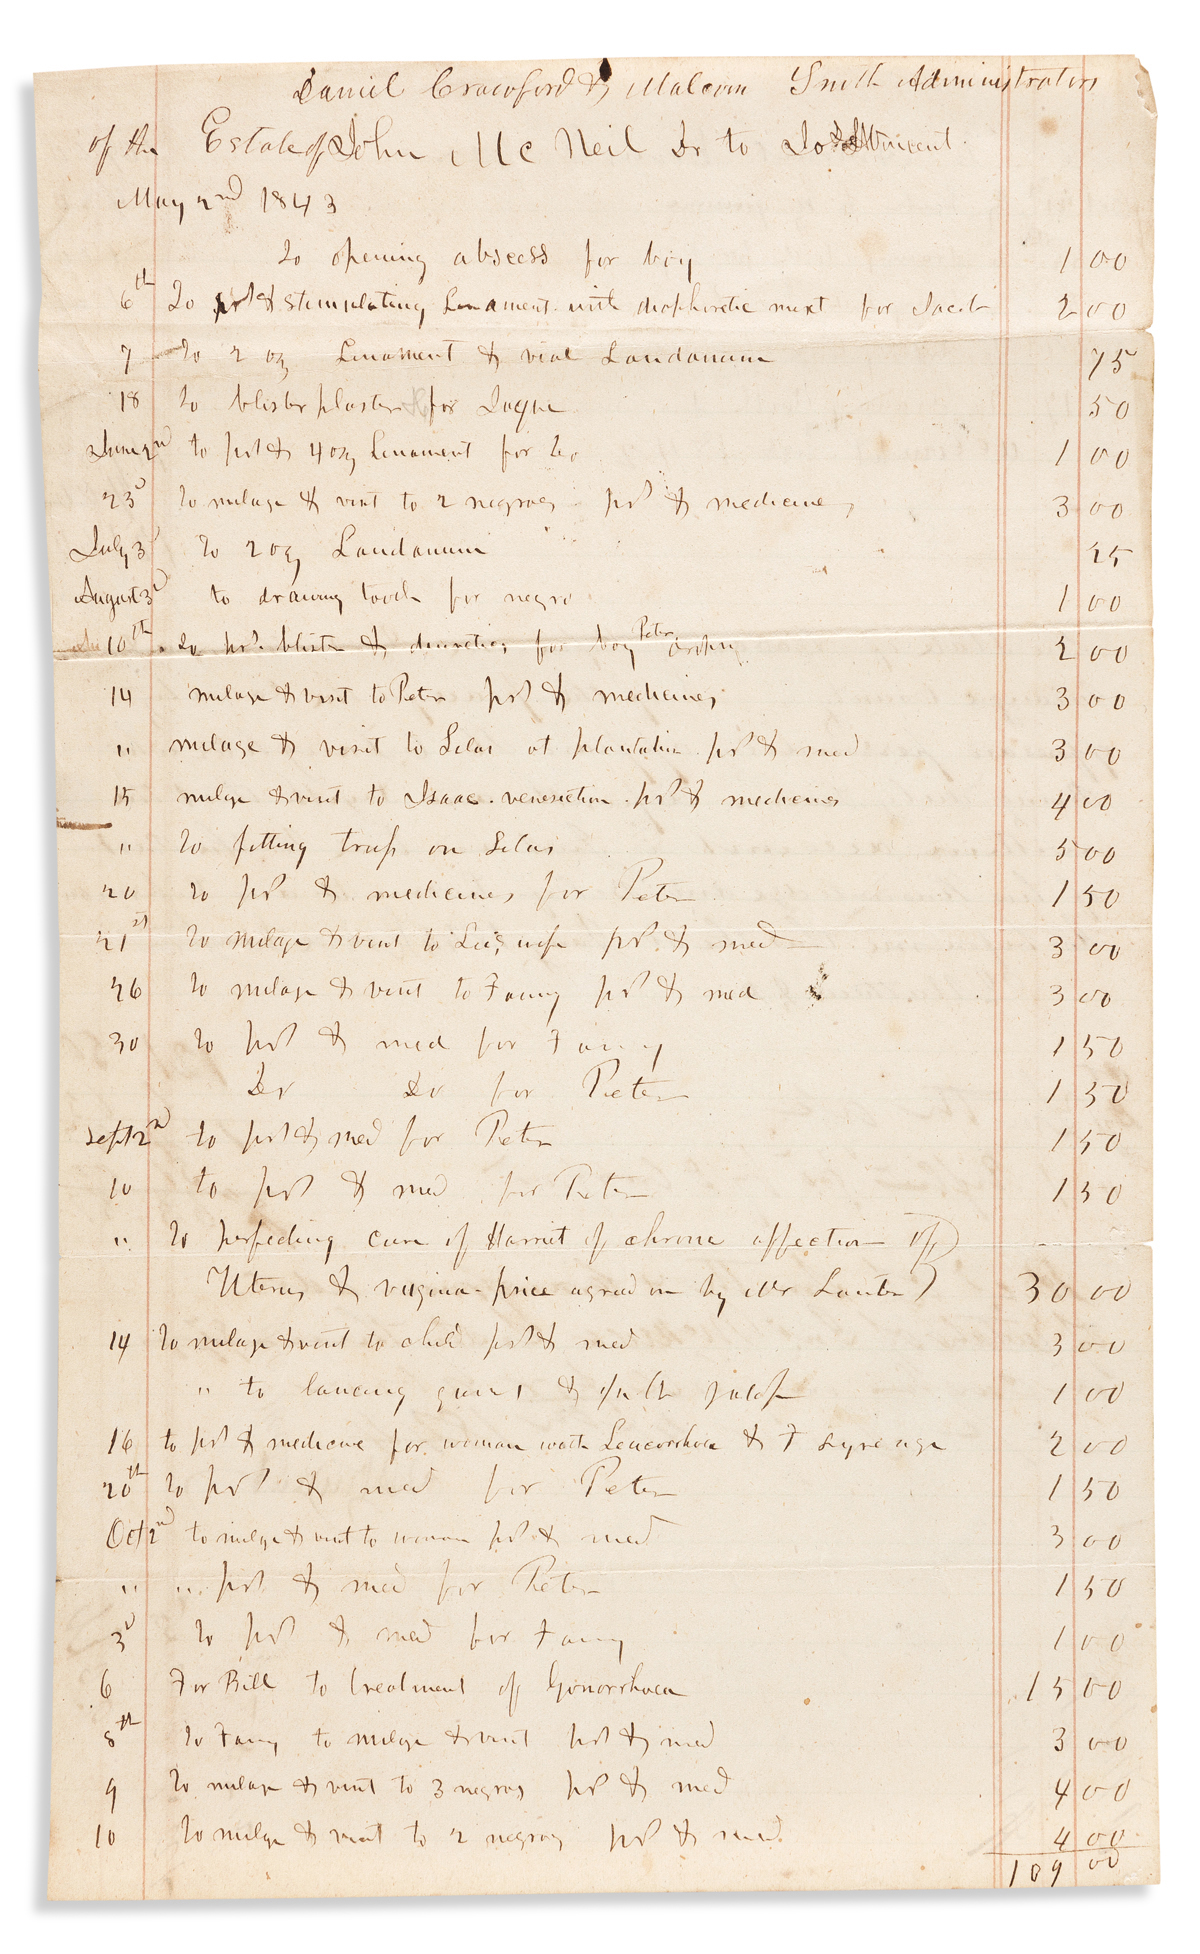 (SLAVERY AND ABOLITION.) Running account for a physicians work on the enslaved people at a central Alabama cotton plantation.